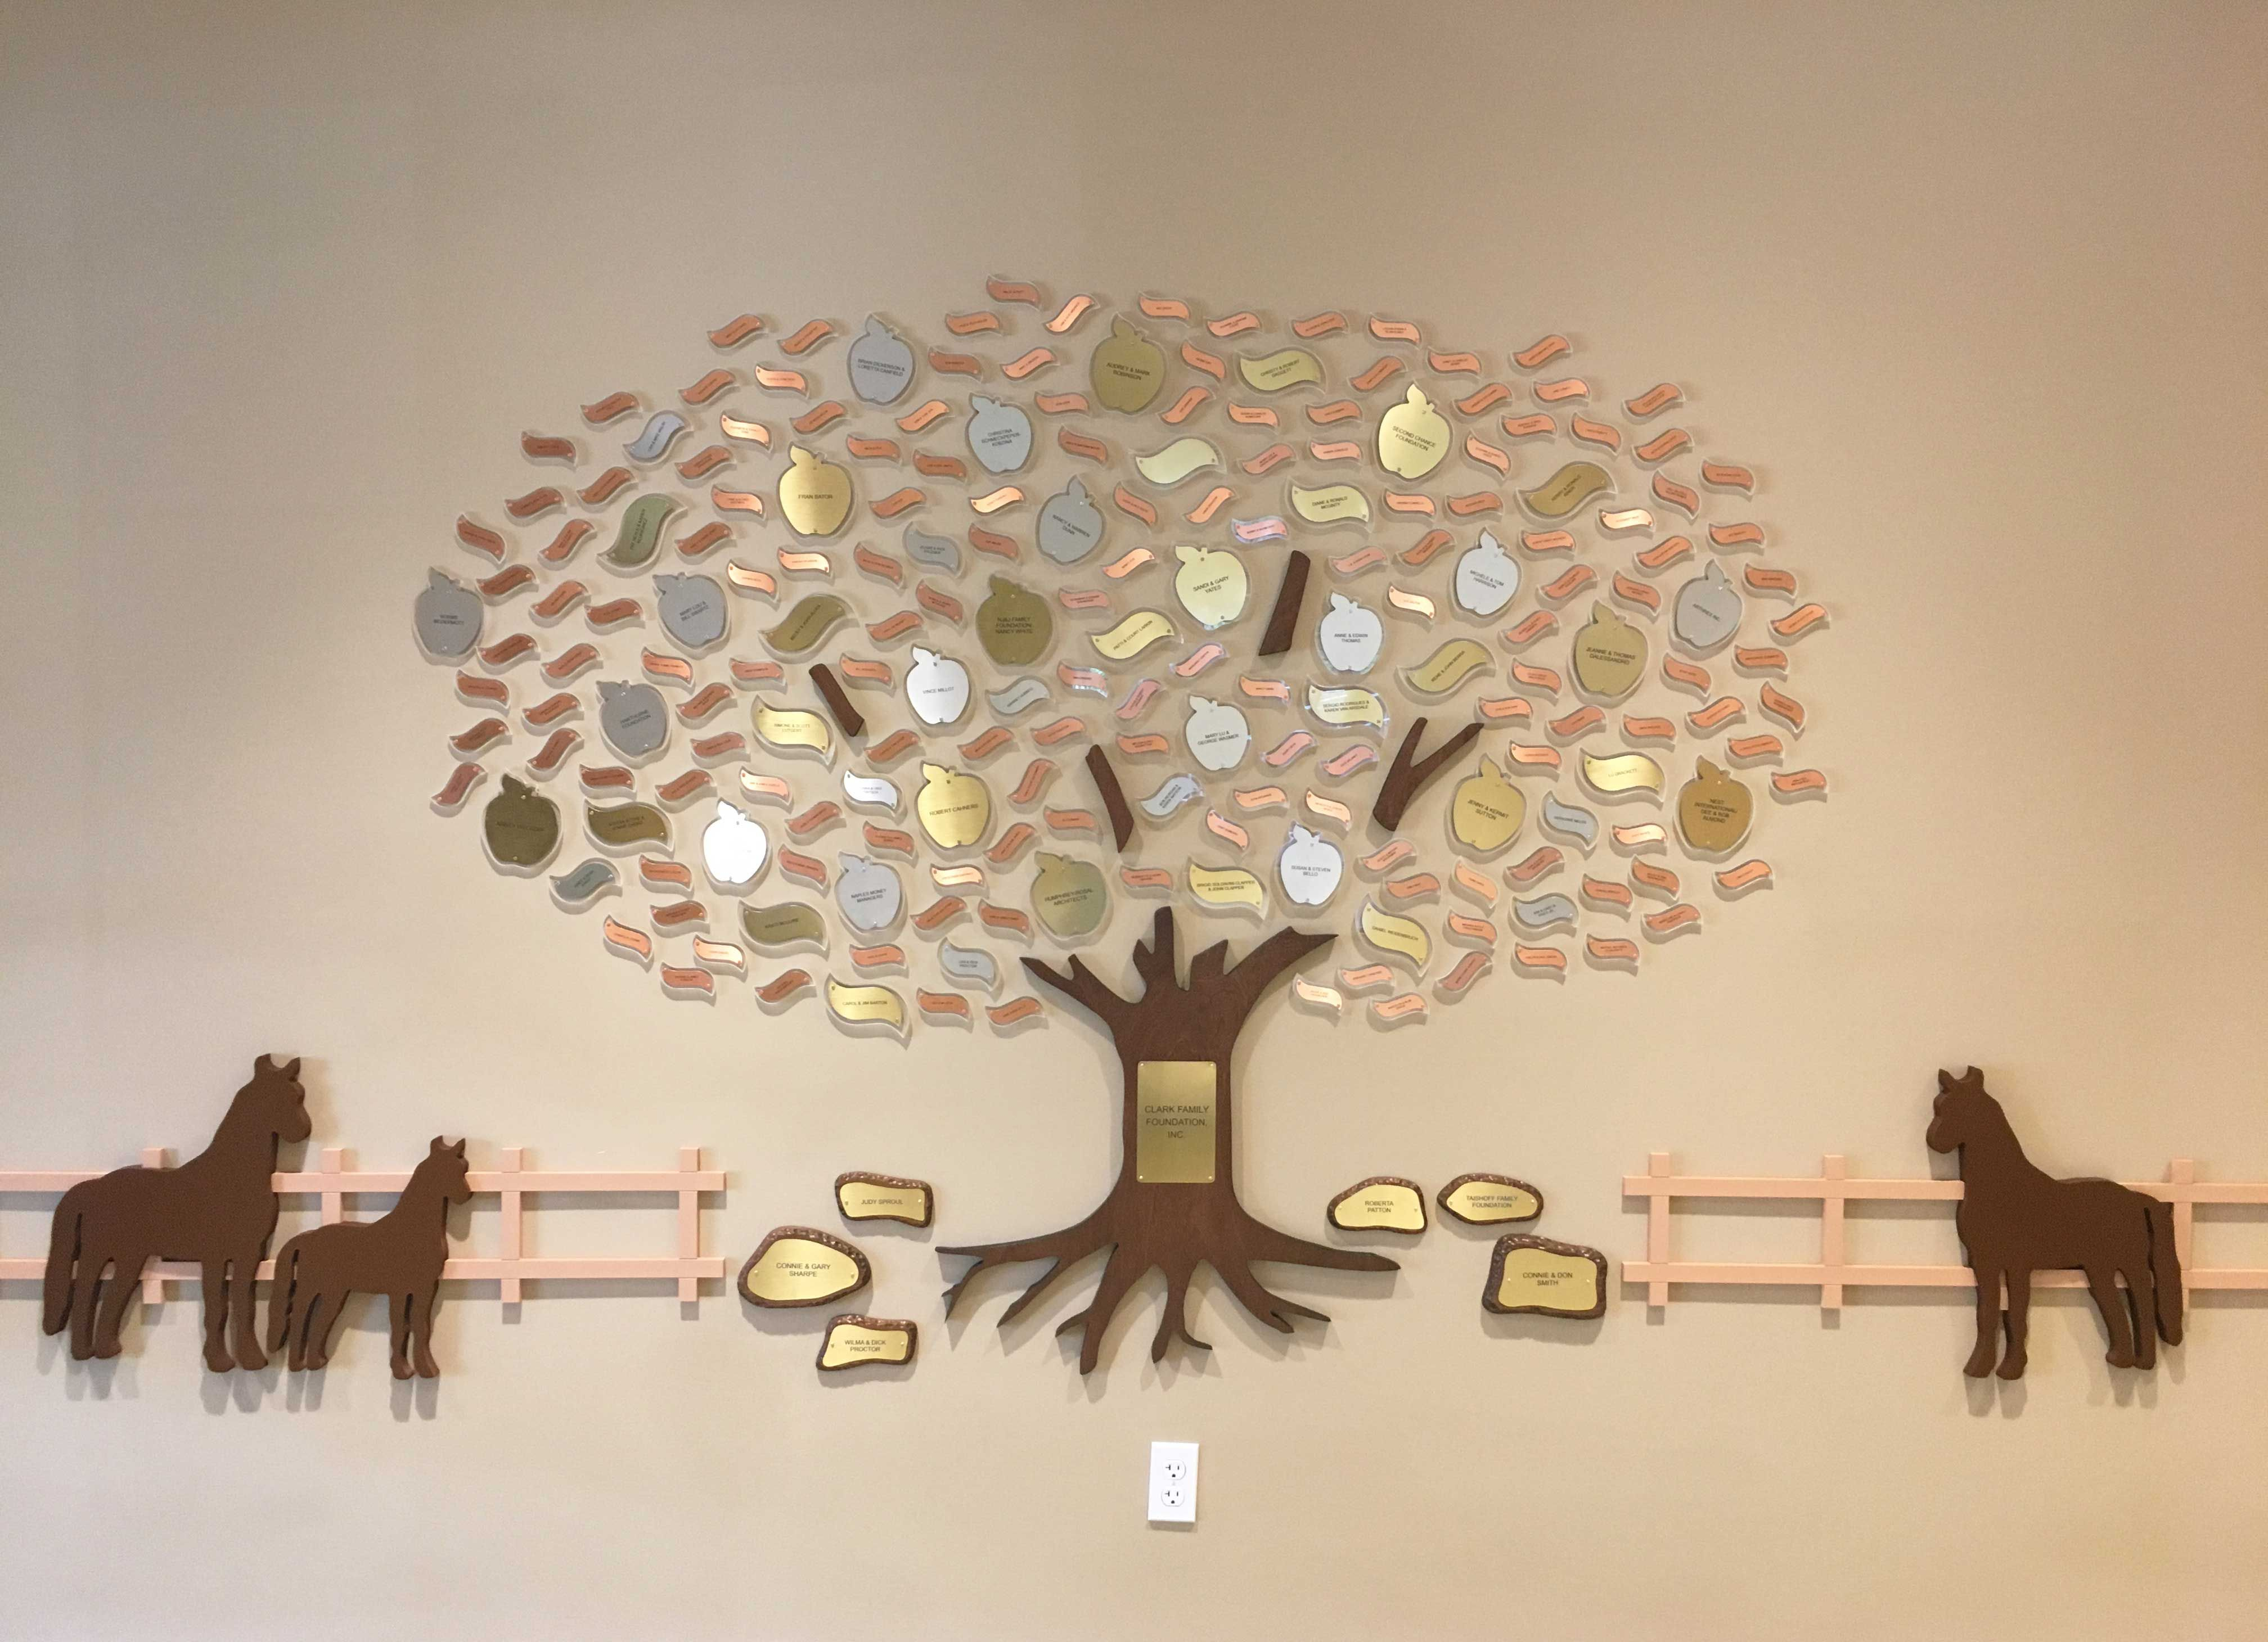 Farm Naples Therapeutic Riding Center Naples Fl 151 1 X 3 Copper 9 1 1 2 X 3 1 2 Aluminum And 16 2 X 4 Brass Leaves Donor Tree Tree Designs Tree